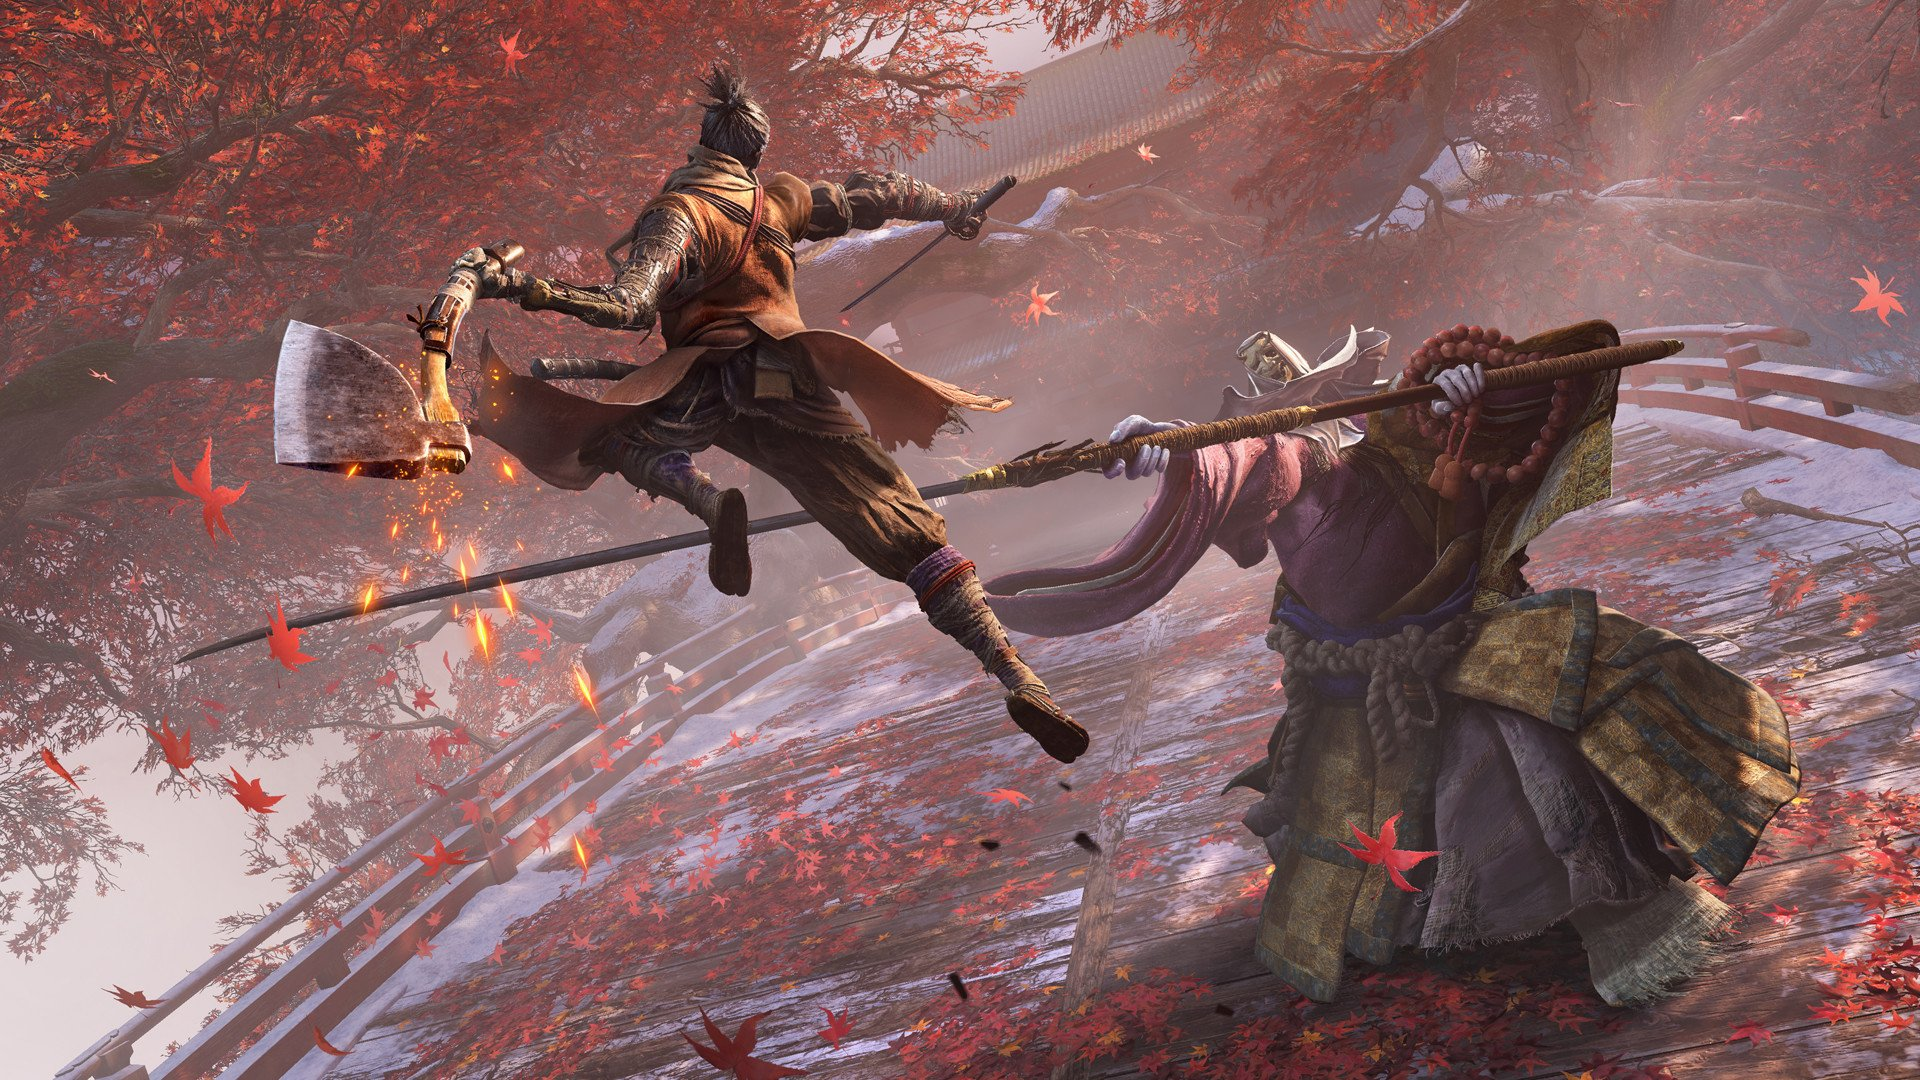 Sekiro: Shadows Die Twice is only $25 at Target during their Cyber Monday 2019 sale.